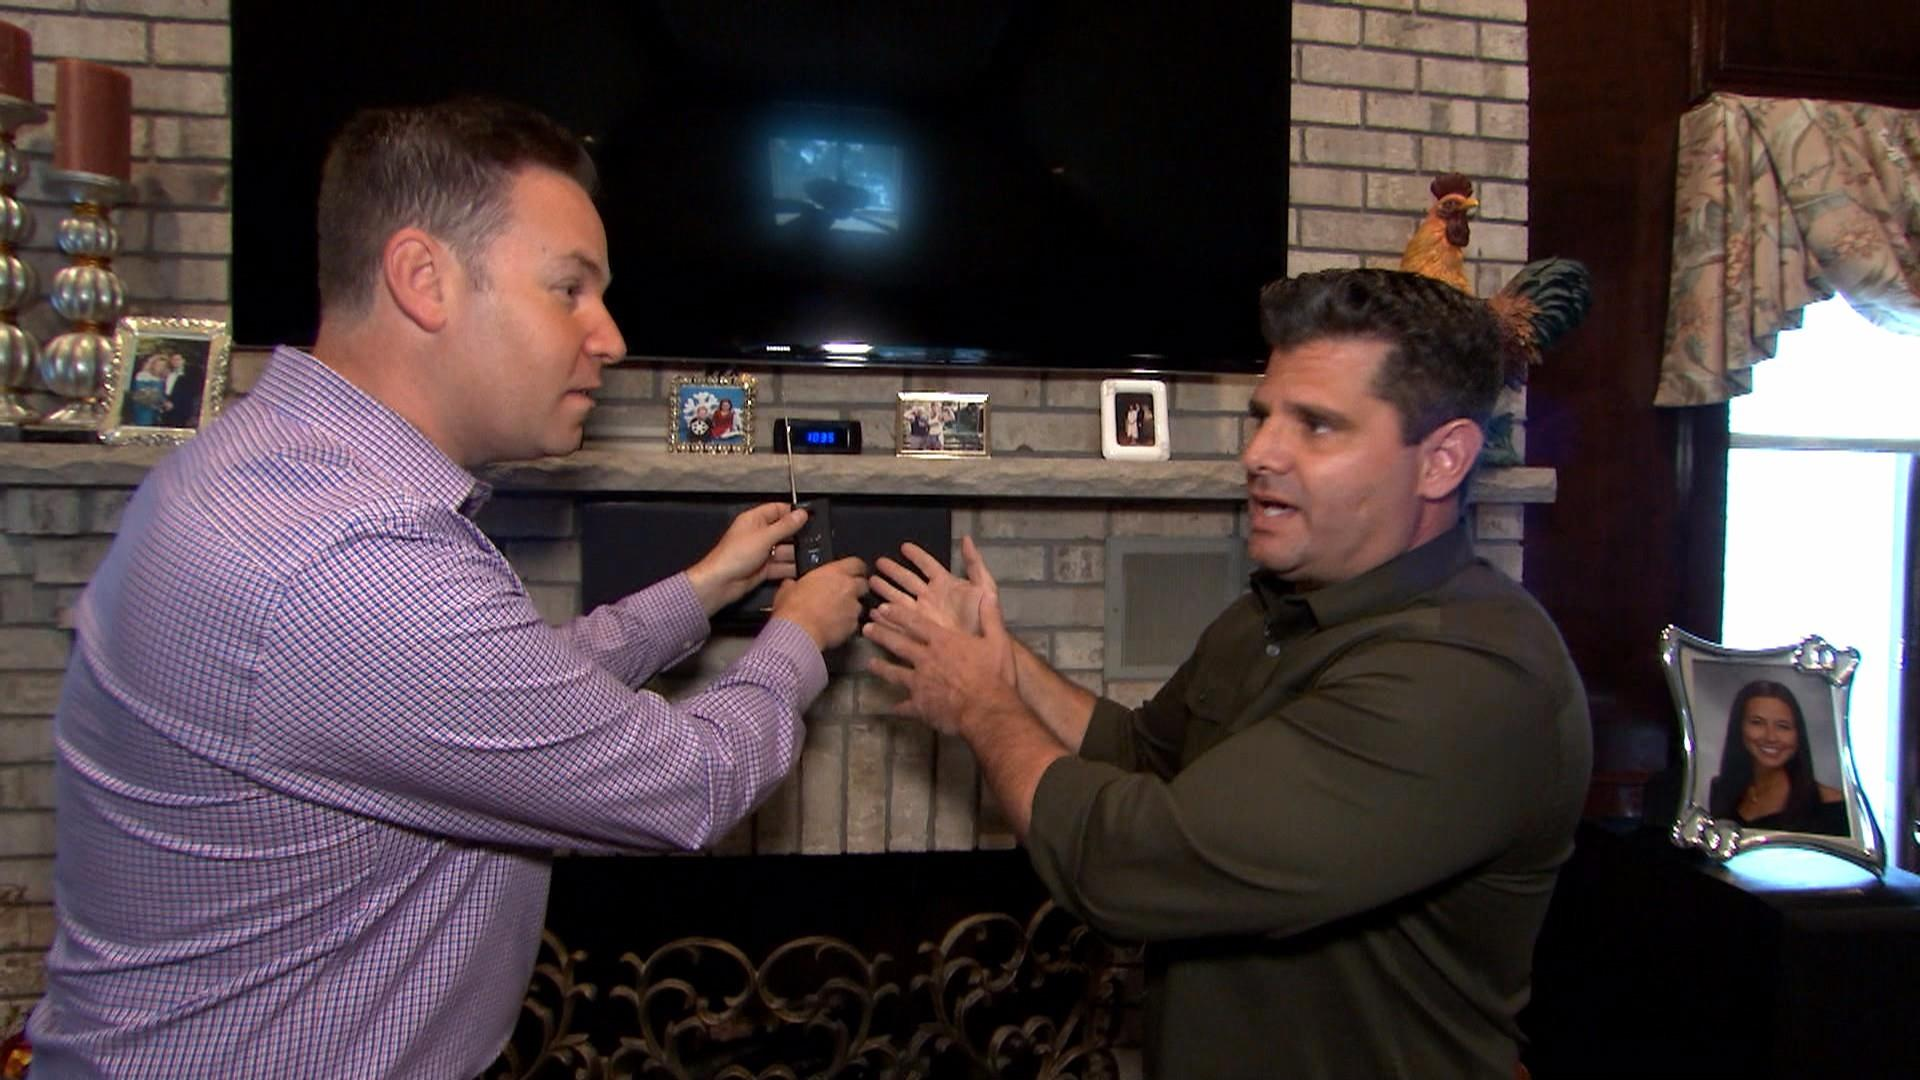 How to prevent being watched by hidden cameras in rental